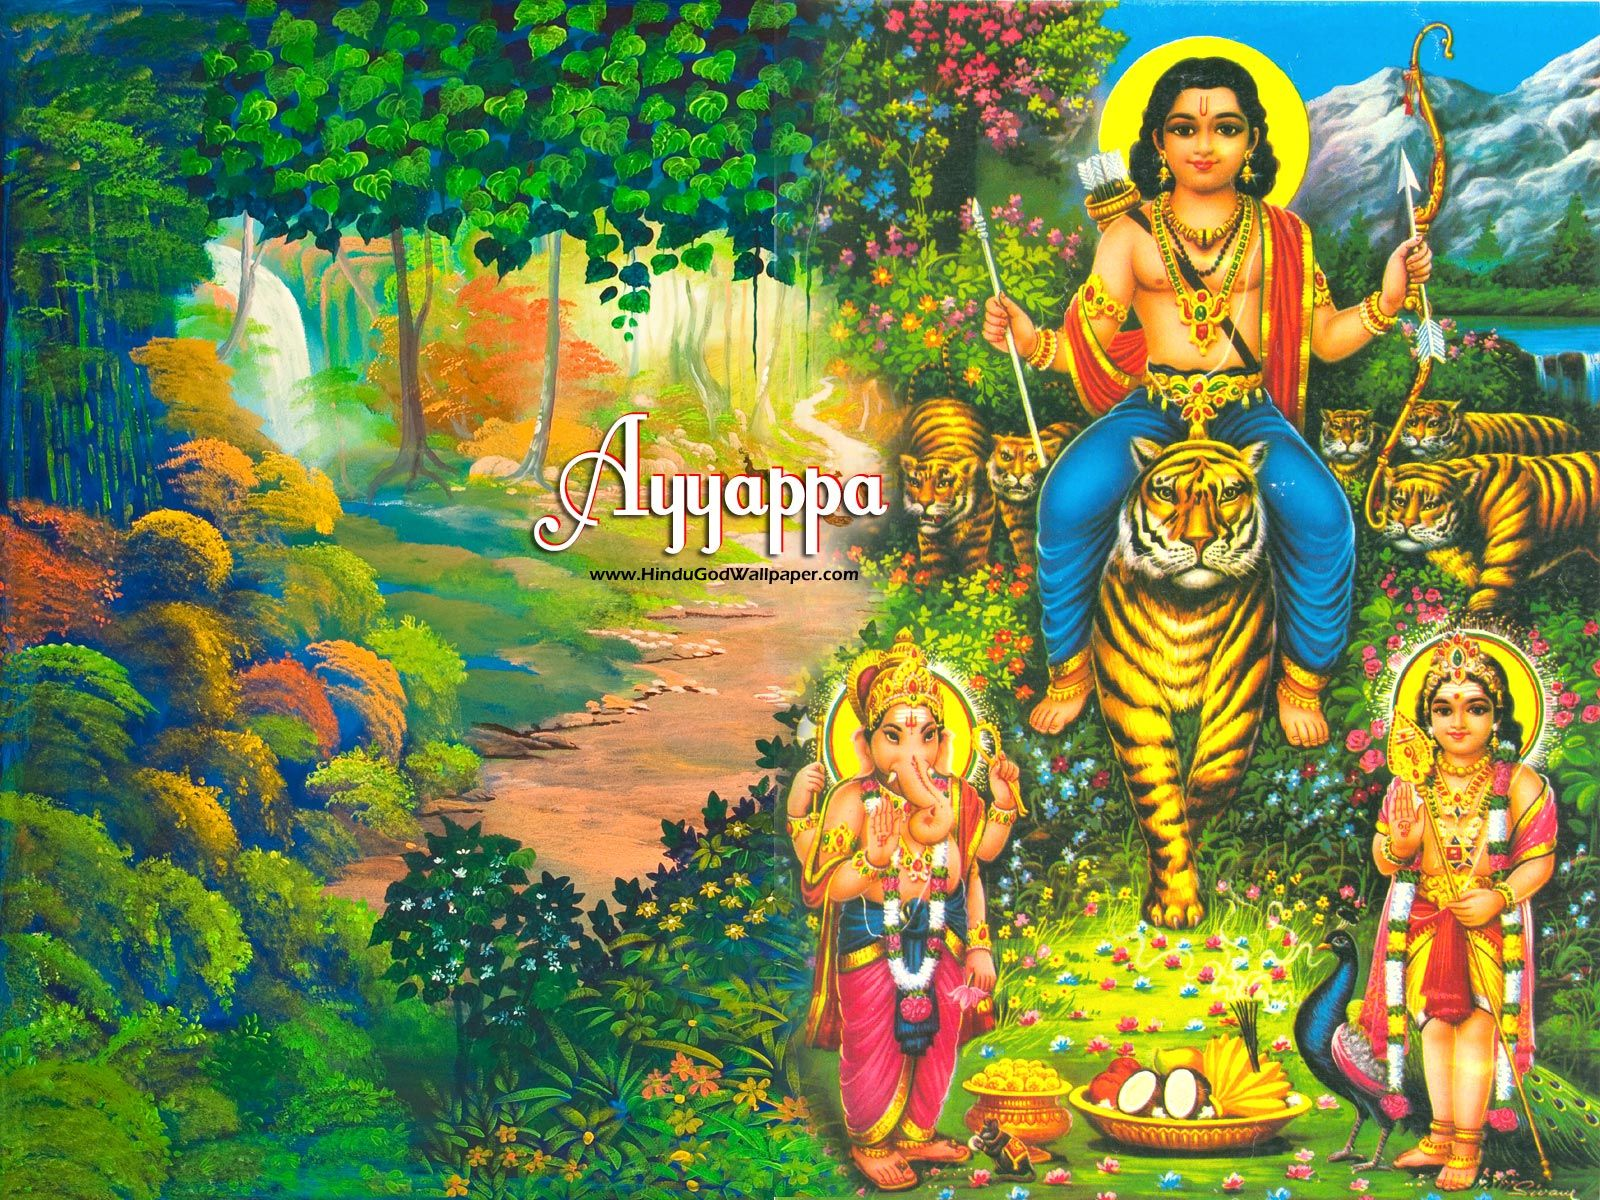 Must see Wallpaper High Resolution Lord Ayyappa - a418422a3e59f14c1bc964753200e247  2018_629793.jpg